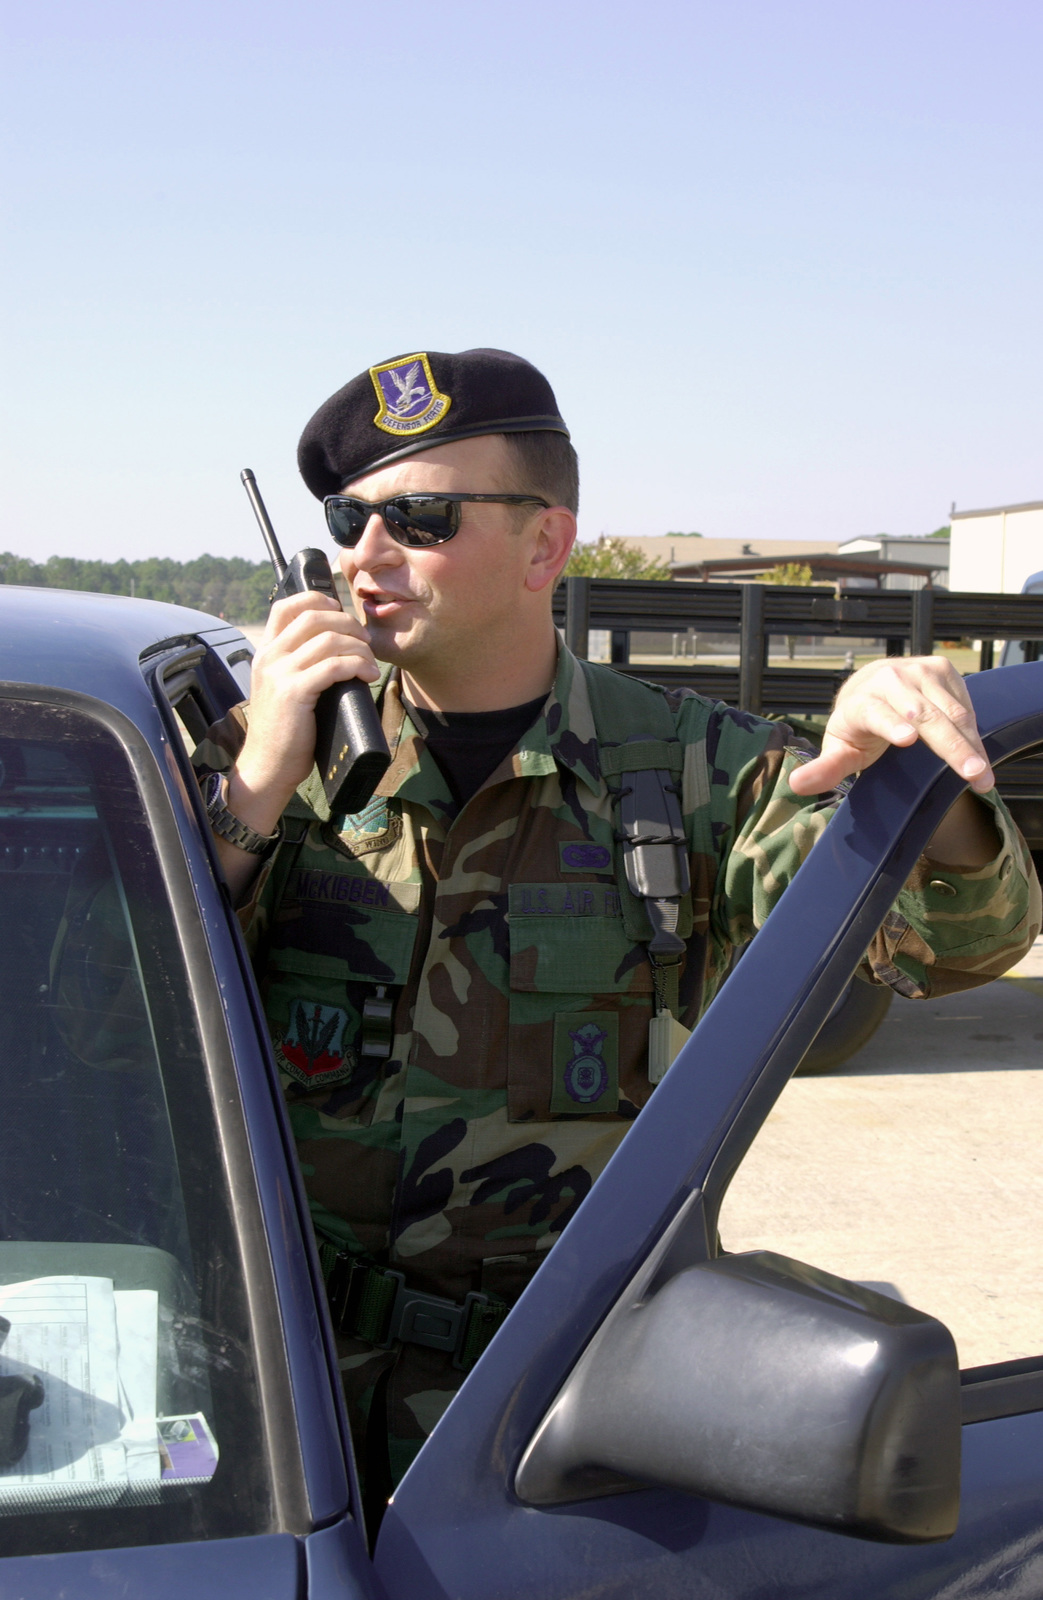 Using a hand held radio, STAFF Sergeant Ken McKibben, USAF, 116th Security Police Squadron, Robins Air Force Base, Georgia, reports any suspicious activity on the flight line at his temporary station at Moody Air Force Base, during Operation NOBLE EAGLE. NOBLE EAGLE is a partial mobilization of the reserves for homeland defense and civil support missions in response to the terrorist attacks on September 11, 2001 at the New York World Trade Center and the Pentagon